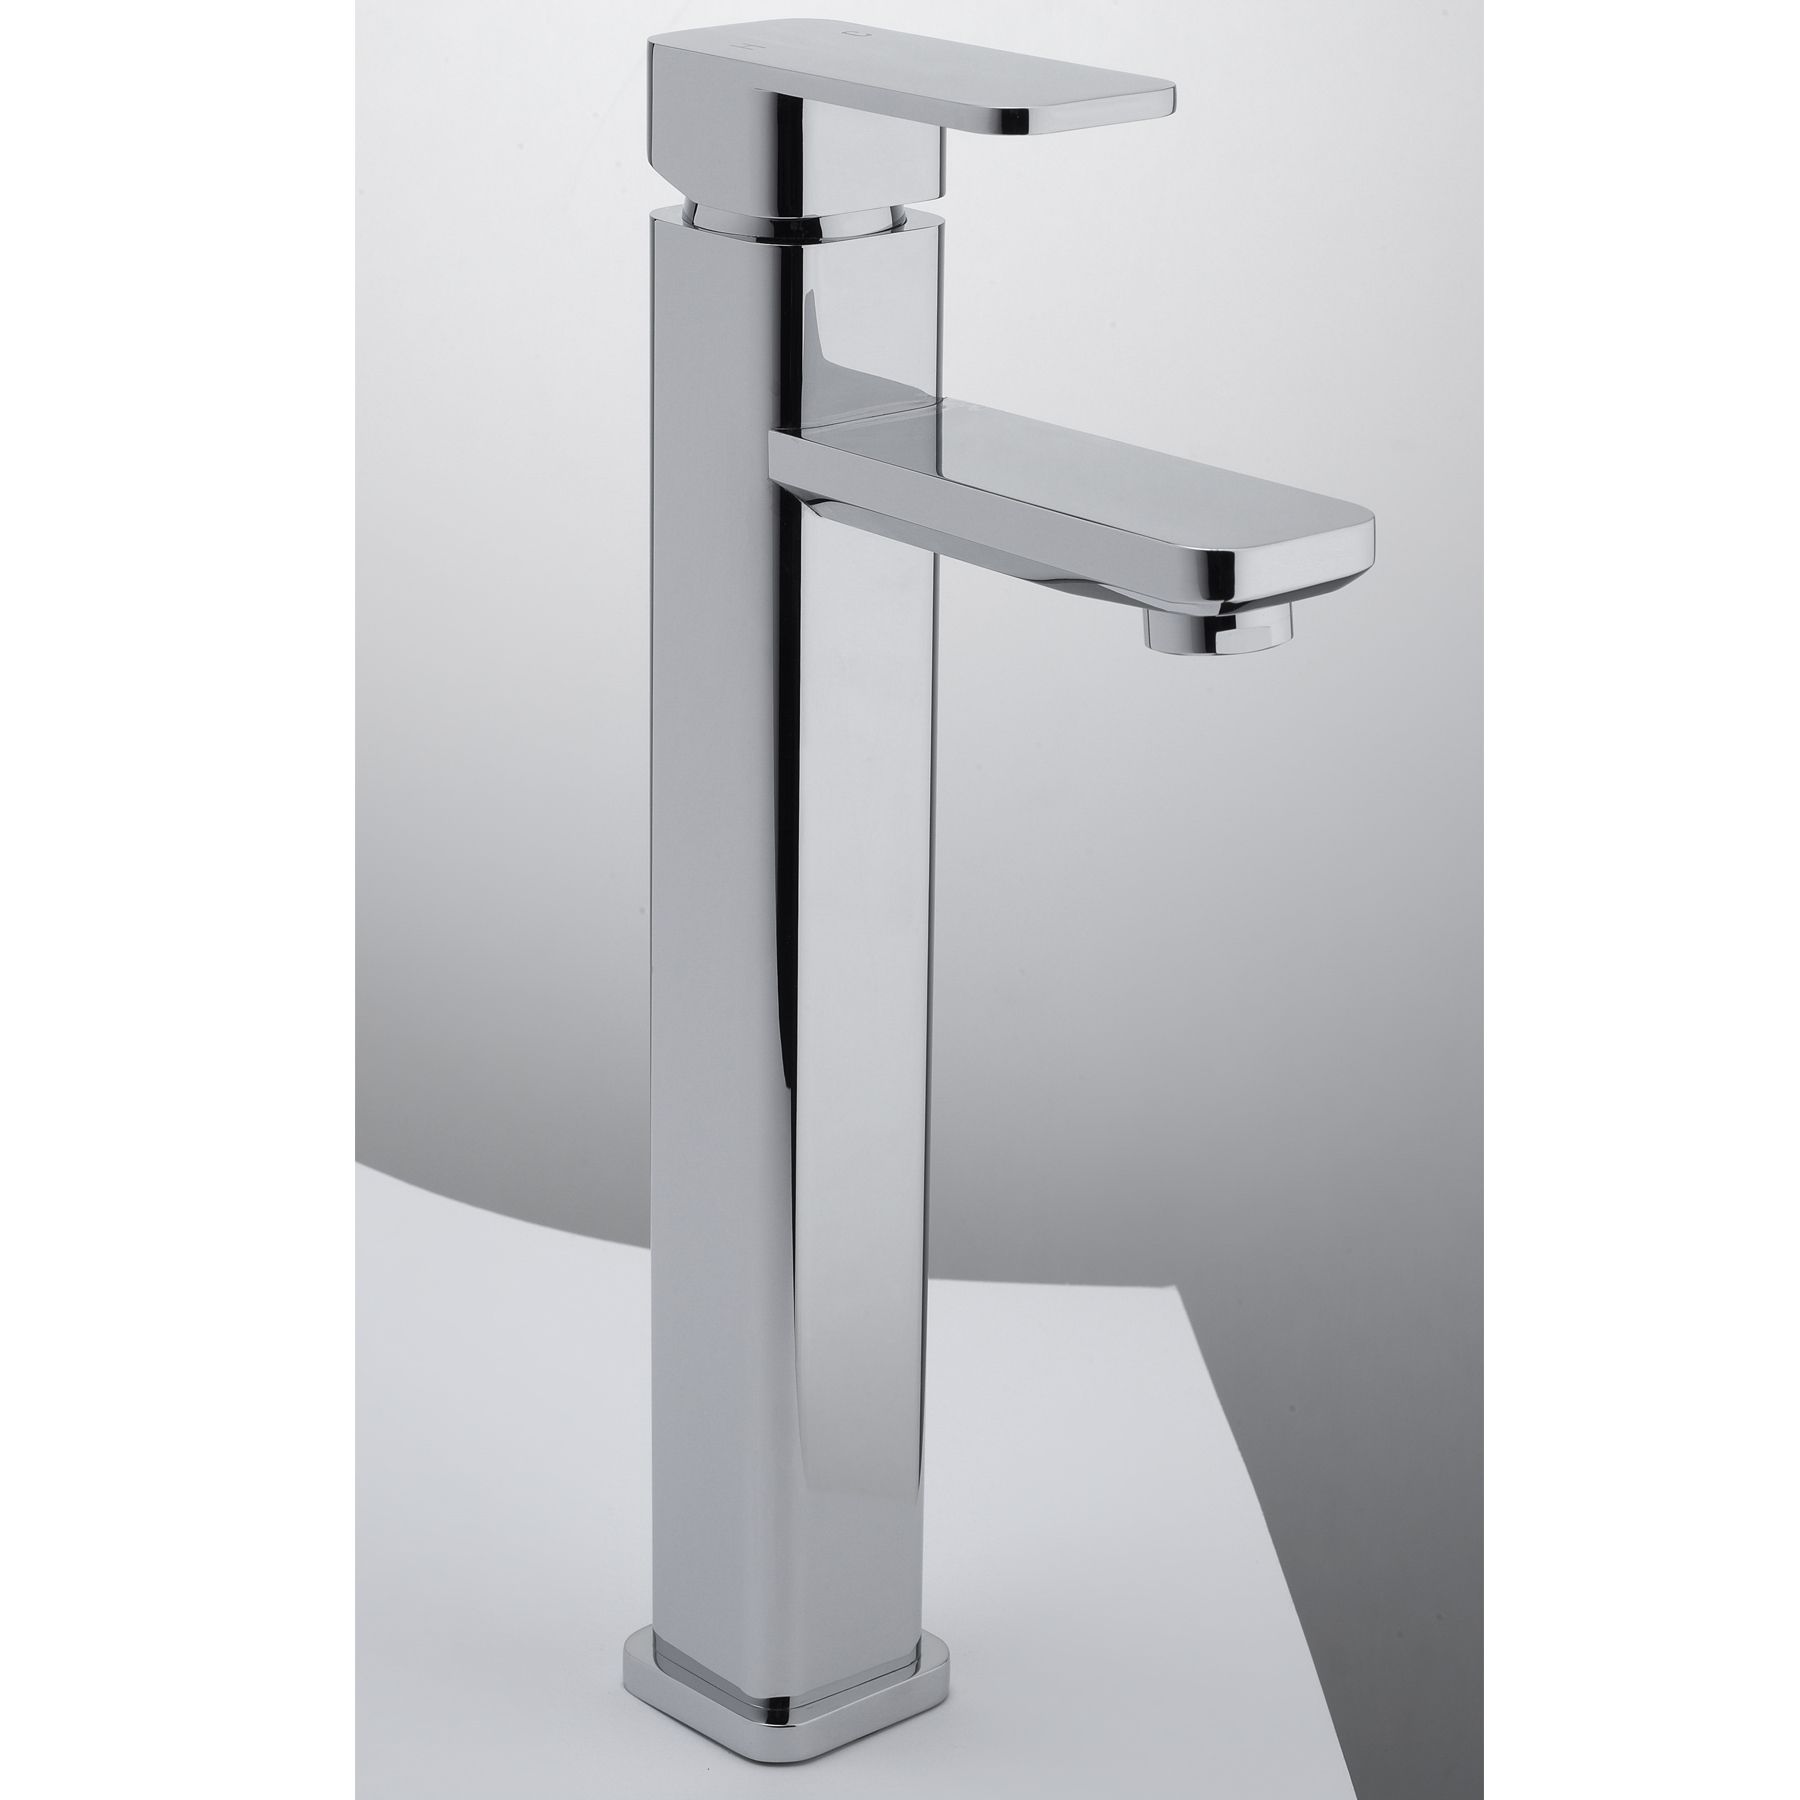 RAK Resort Tall Mono Basin Tap Single Handle Chrome